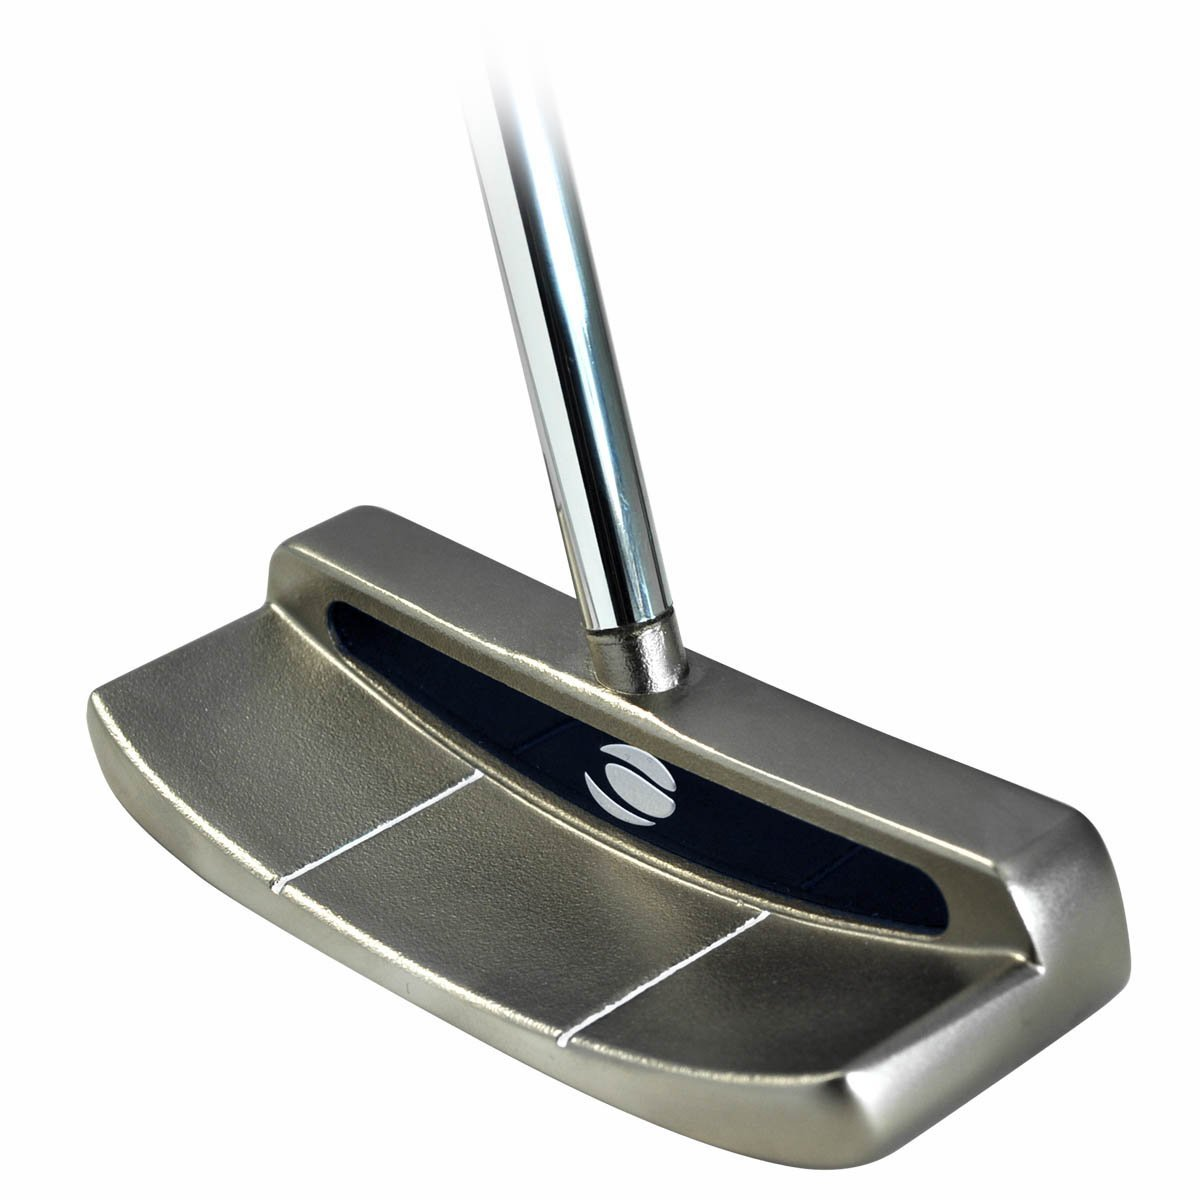 Mens Orlimar Manly Counter Balance Golf Putters